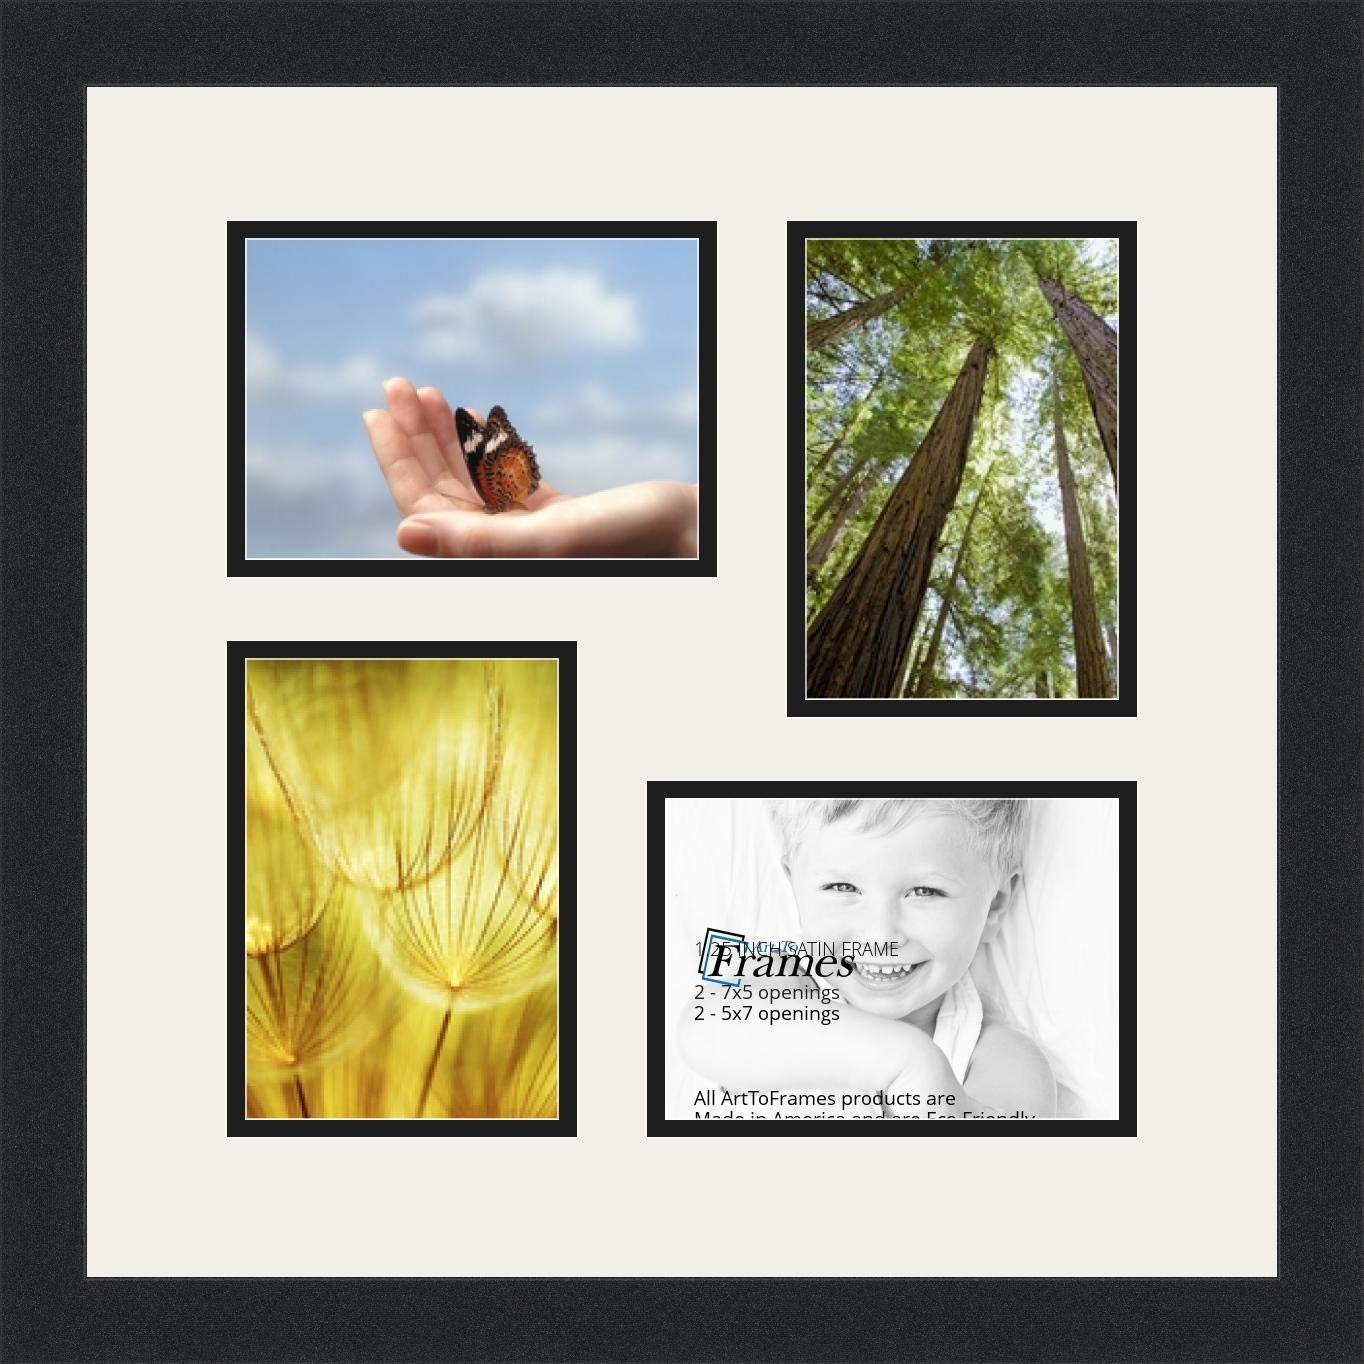 Cheap Collage Photo Frame 5x7 Find Collage Photo Frame 5x7 Deals On